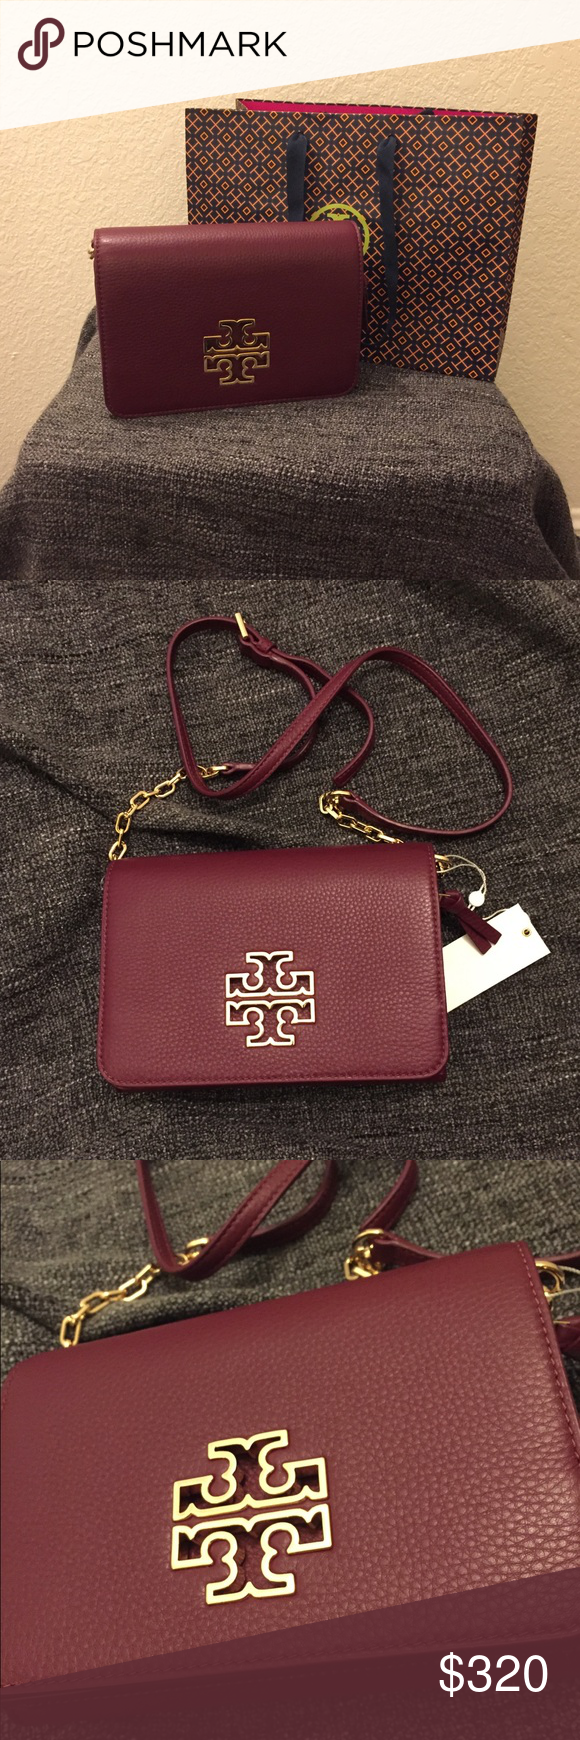 1de658dc282 Tory Burch Britten Combo Crossbody Authentic. Brand new with tags. The  color is Red Agate. Tory Burch Bags Crossbody Bags